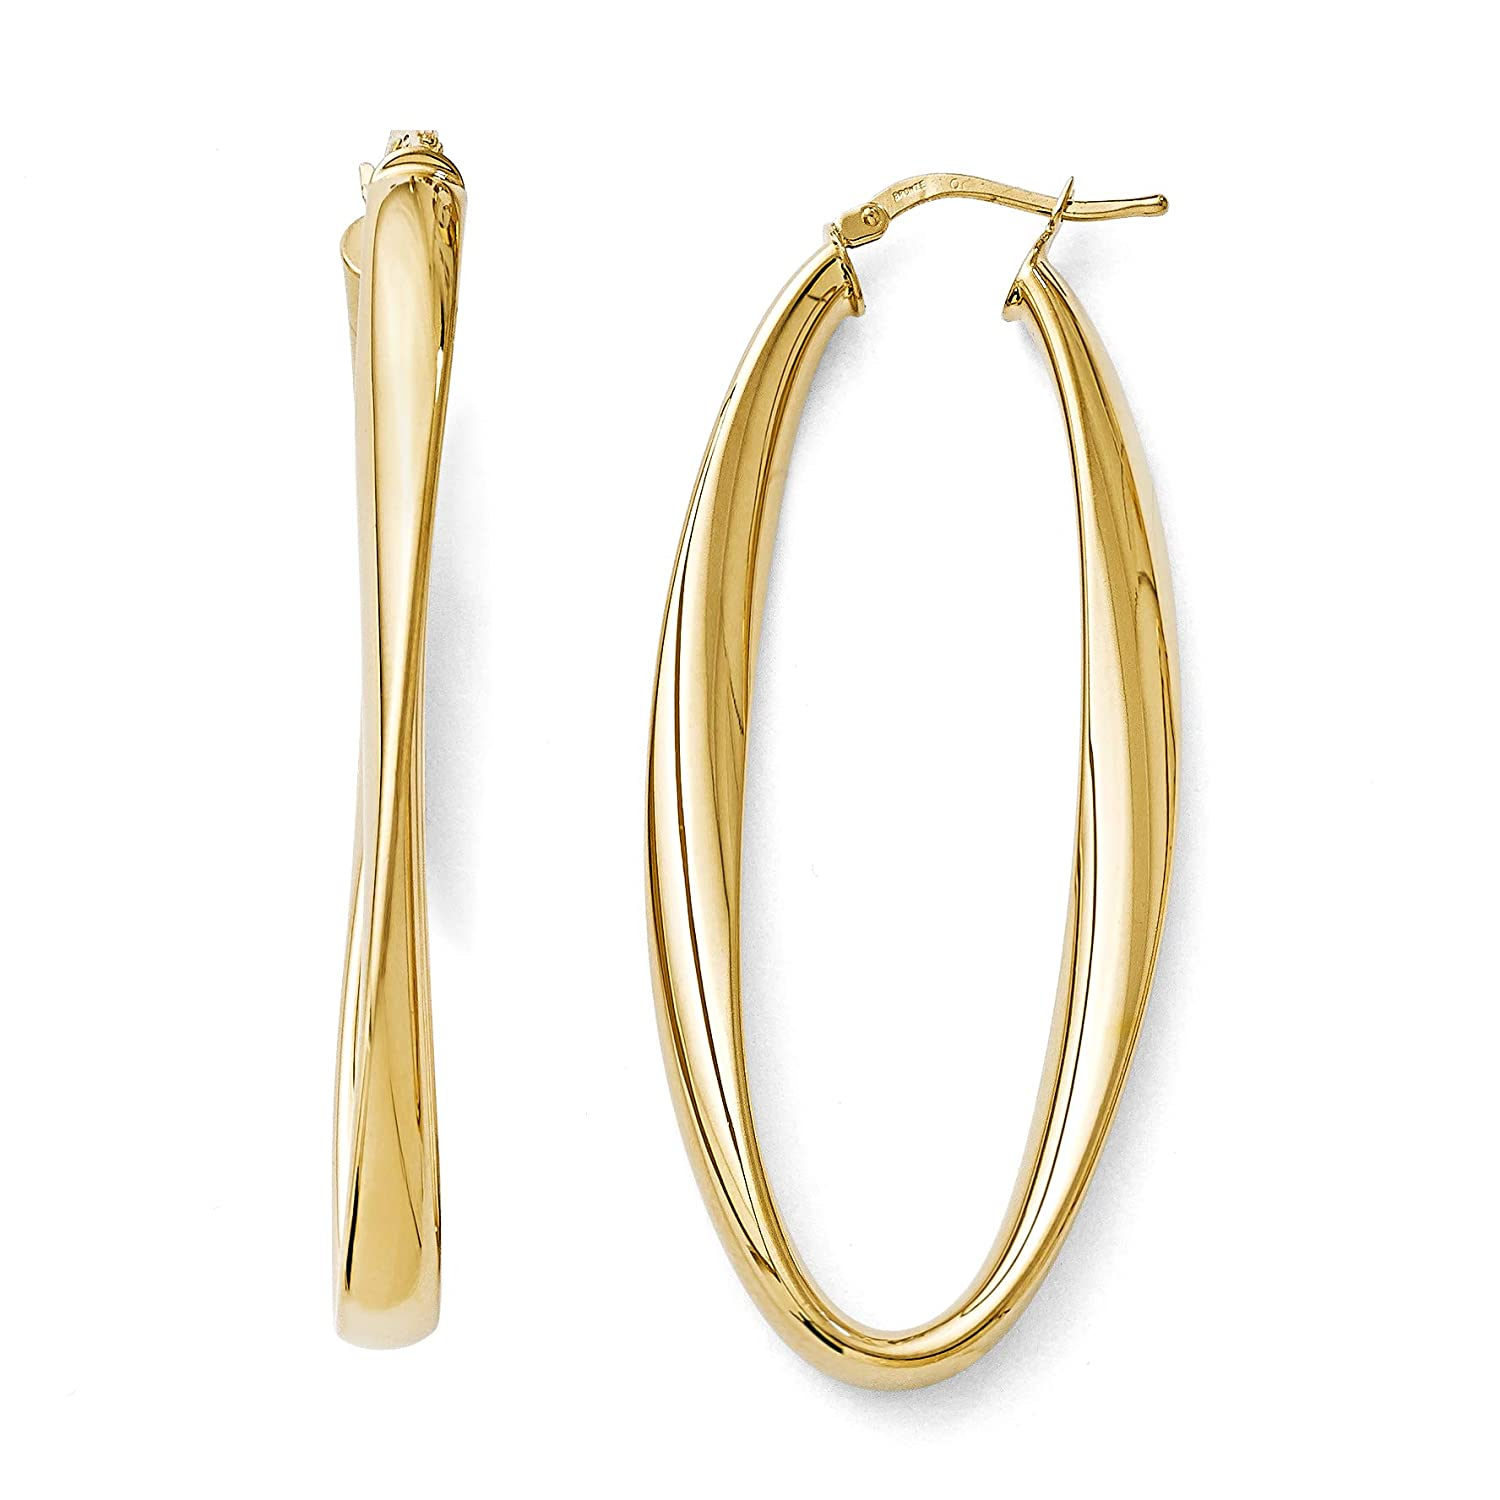 Q Gold Bronze Polished Twisted Oval Hinged Hoop Earrings